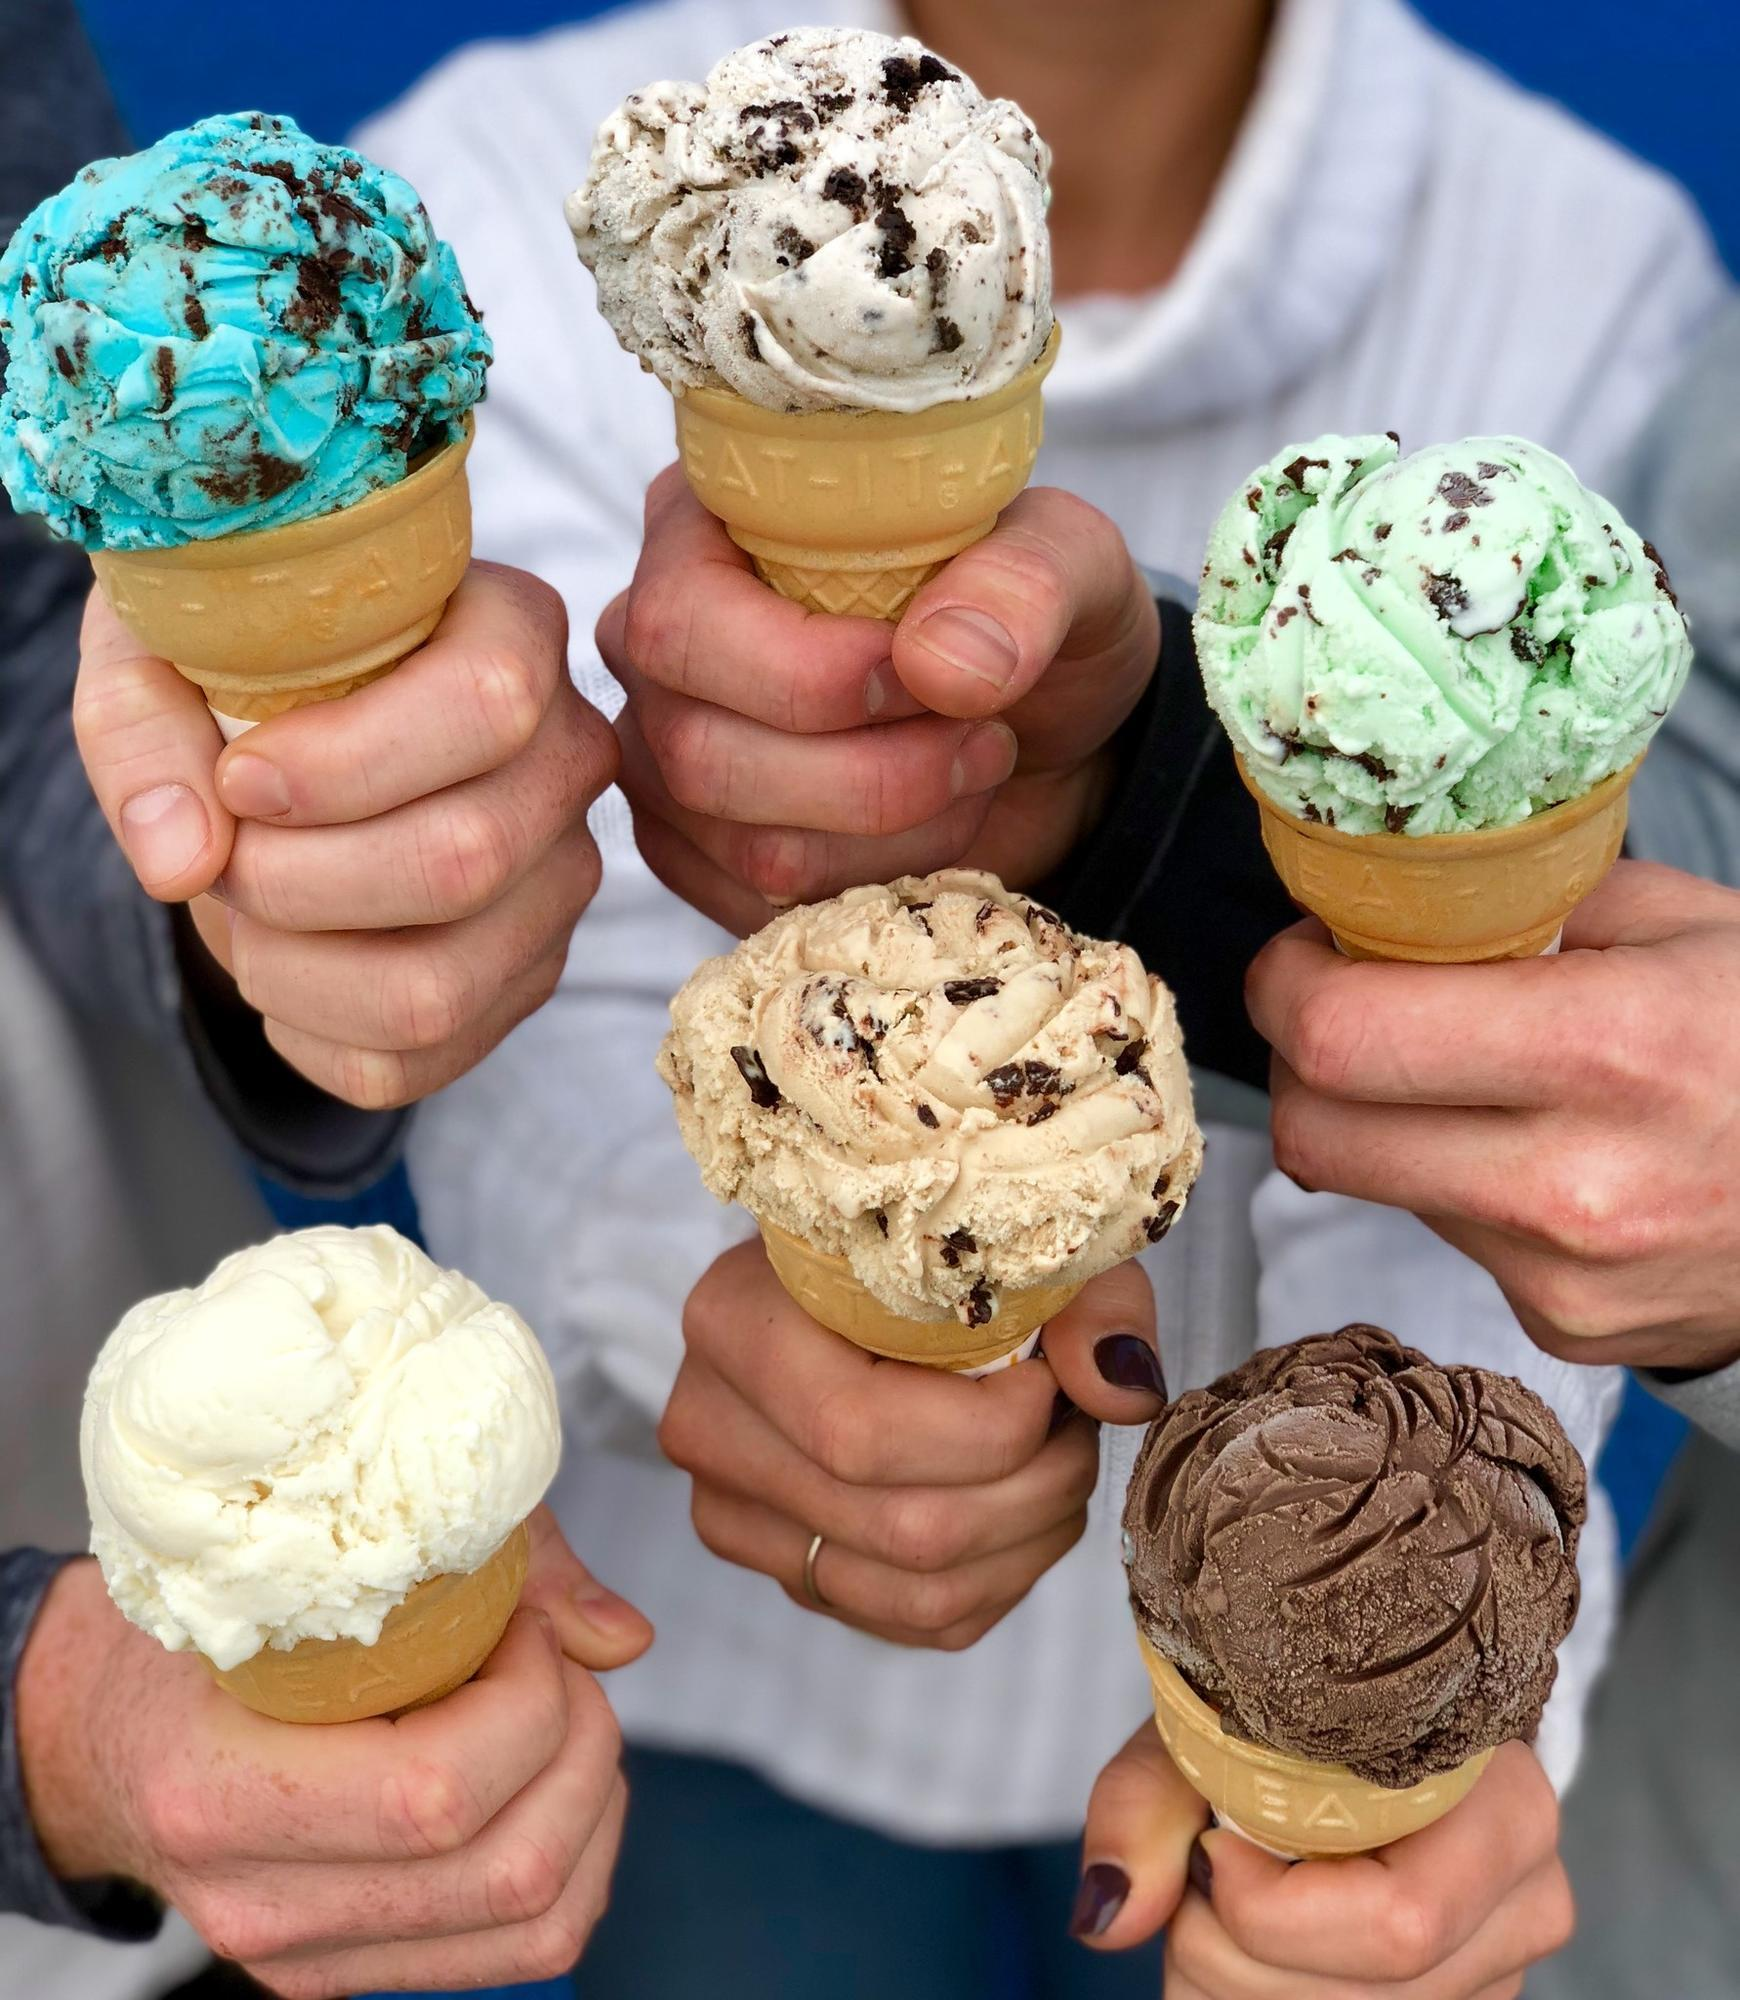 Baked Bear Offers Free Scoops On Feb. 24